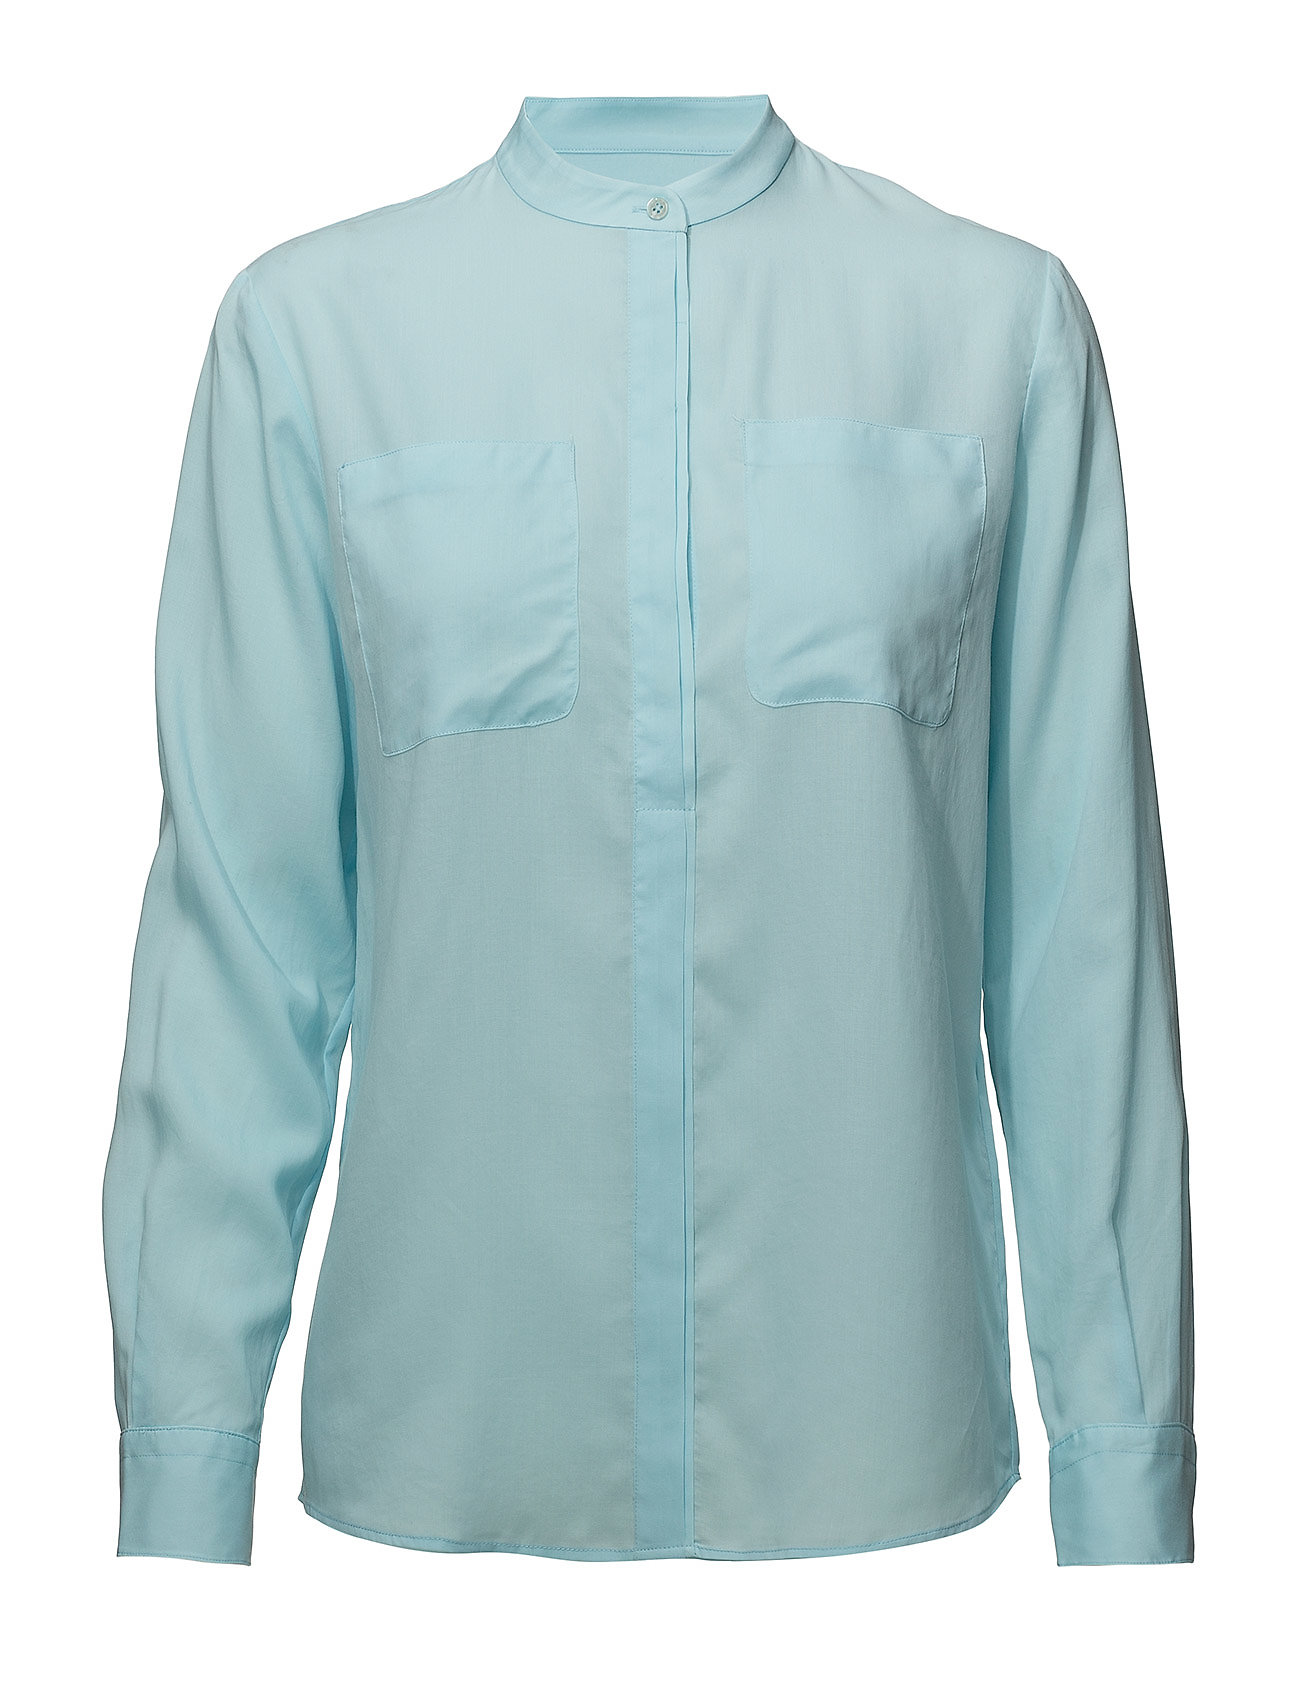 Gant G. TENCEL BLOUSE - GLOW BLUE